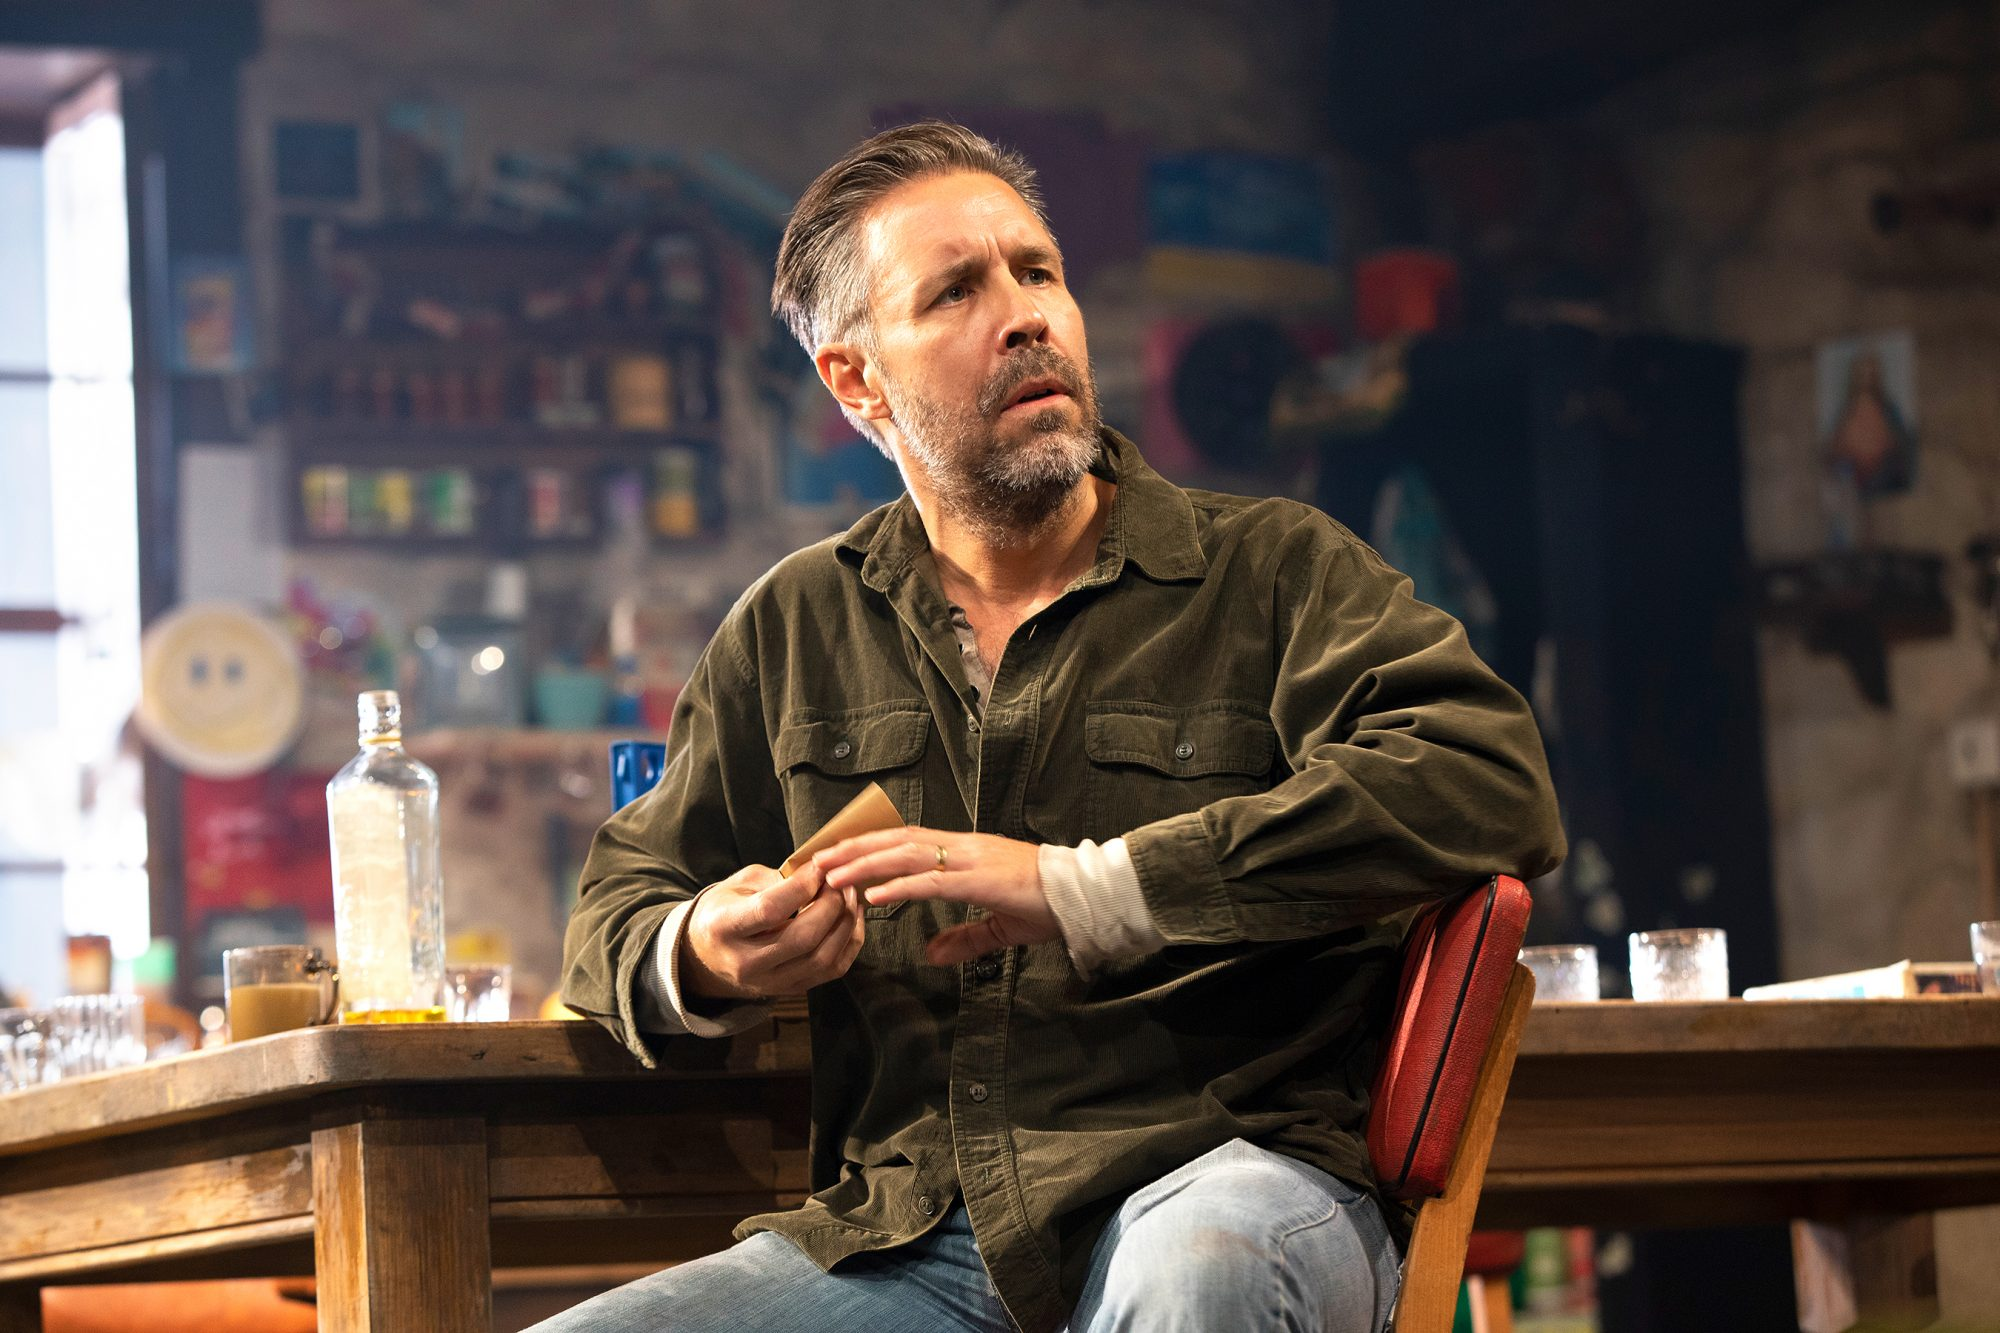 The Ferrymanon BroadwayPaddy Considine (Quinn Carney)